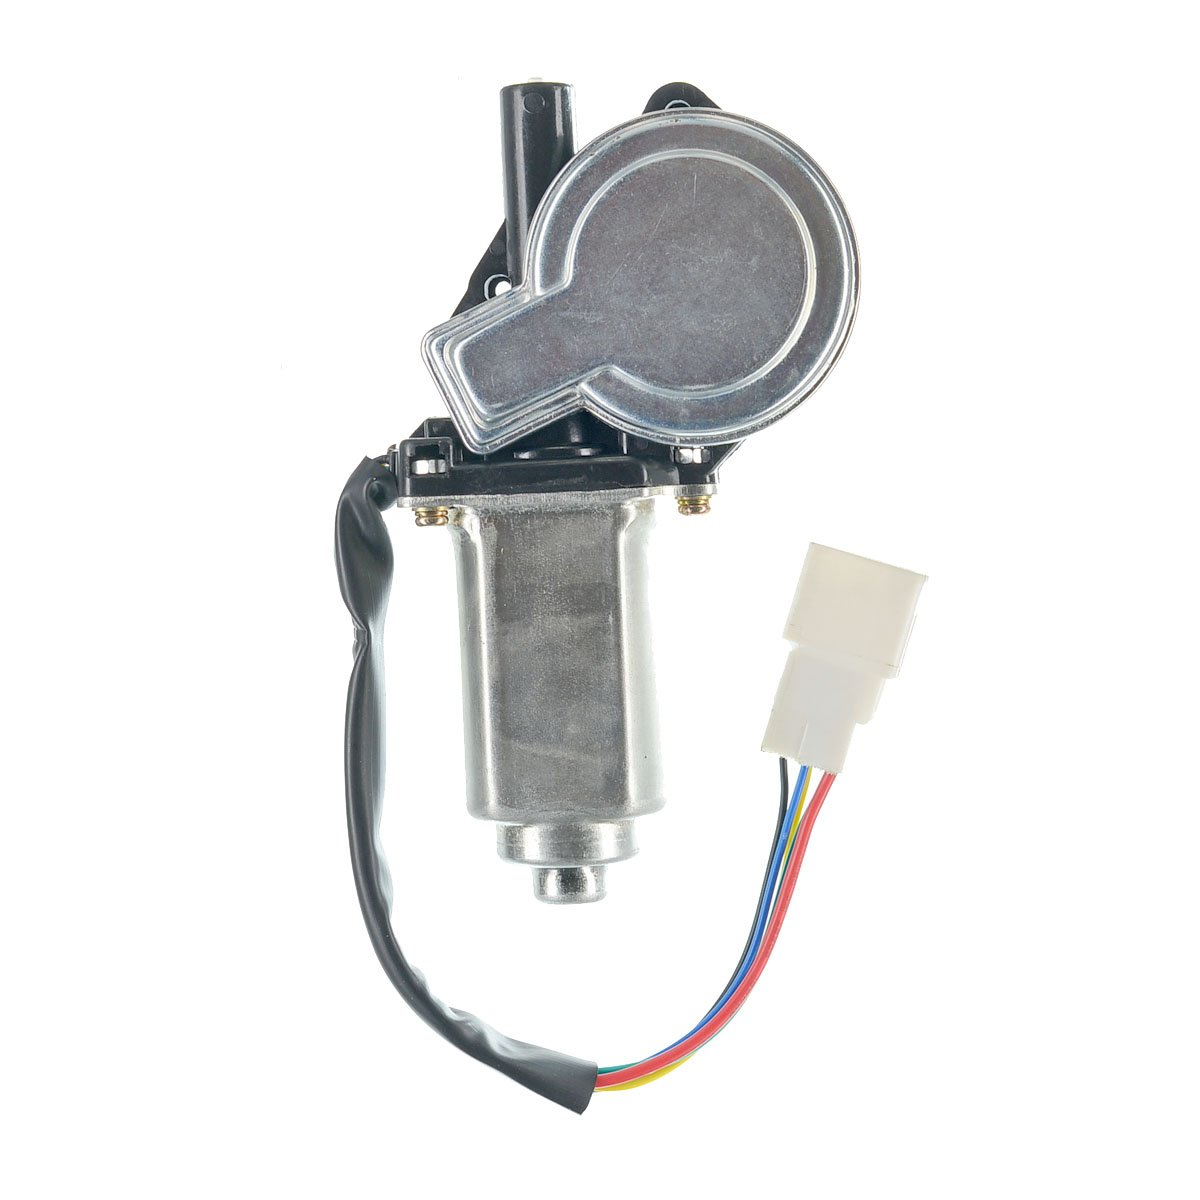 Cheap Gs300 Motor, find Gs300 Motor deals on line at Alibaba com